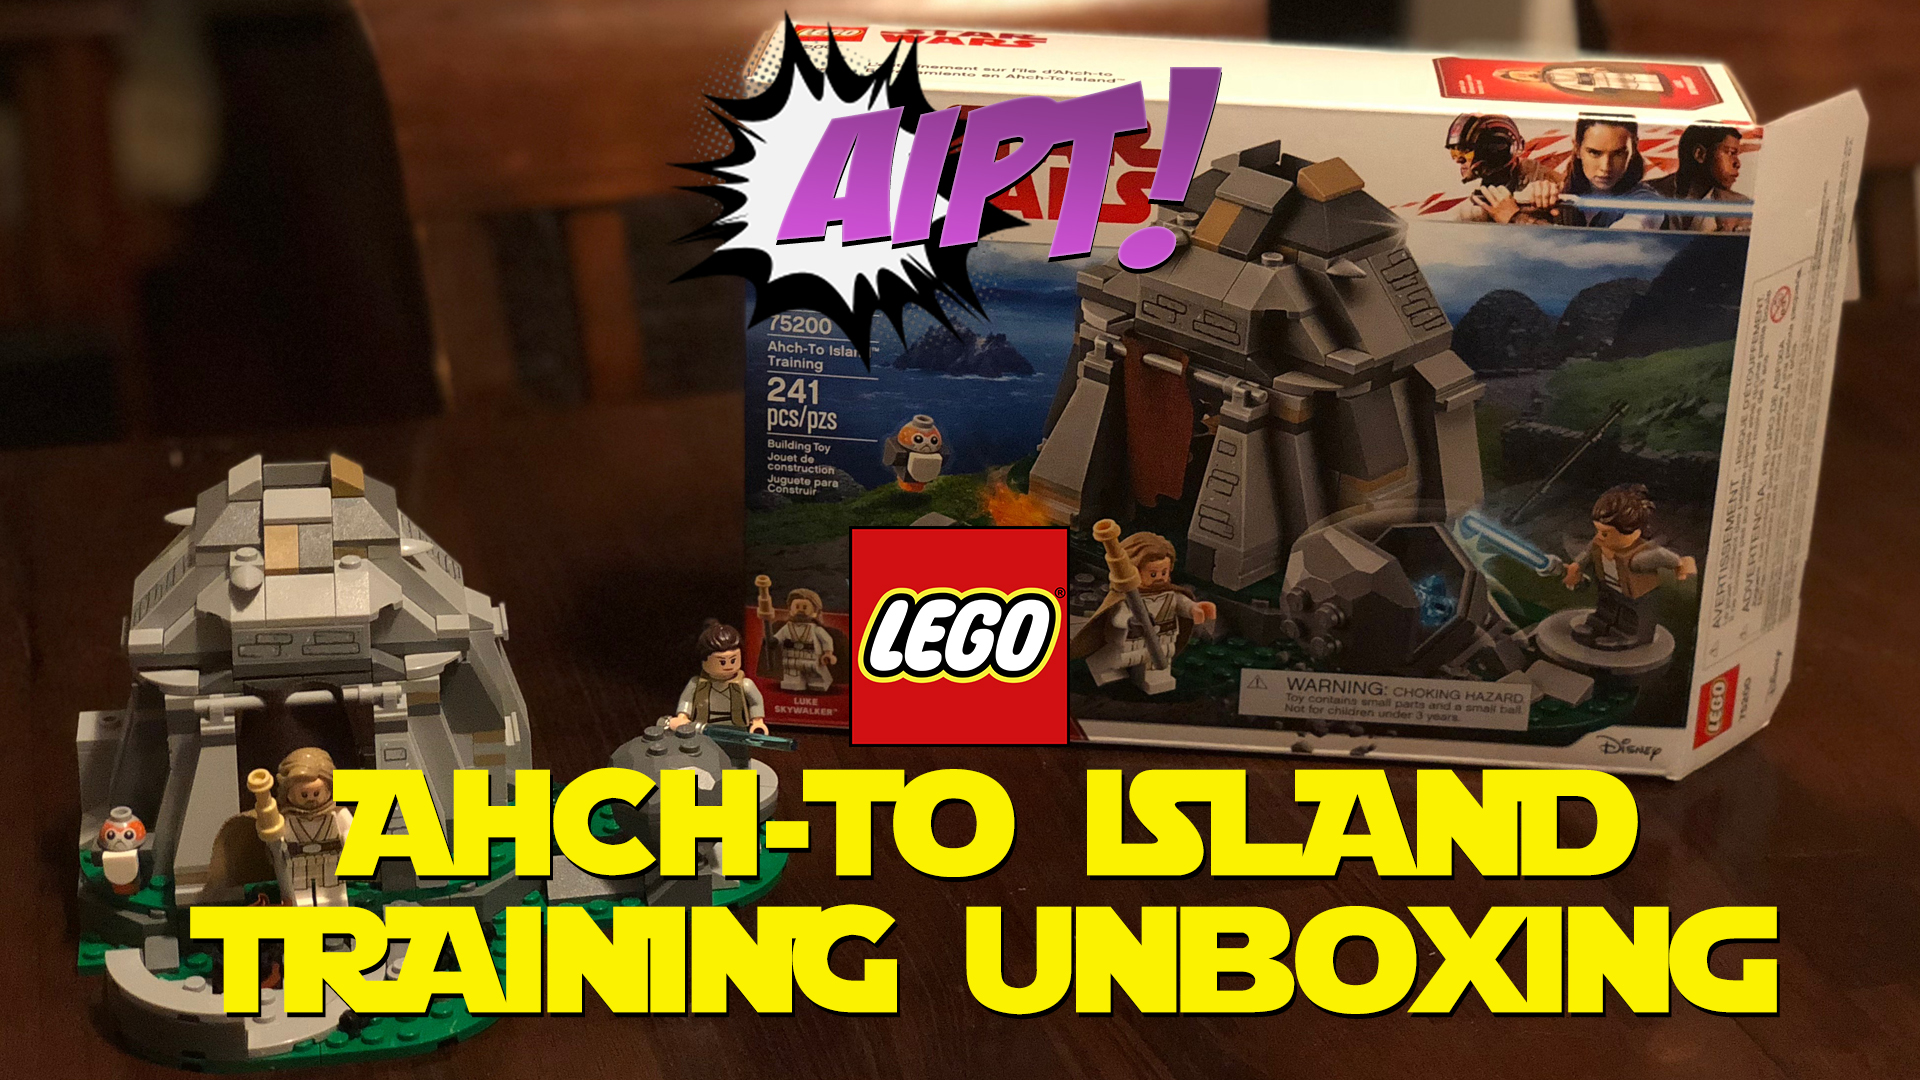 Unboxing/Review: LEGO Star Wars Ahch-To Island Training